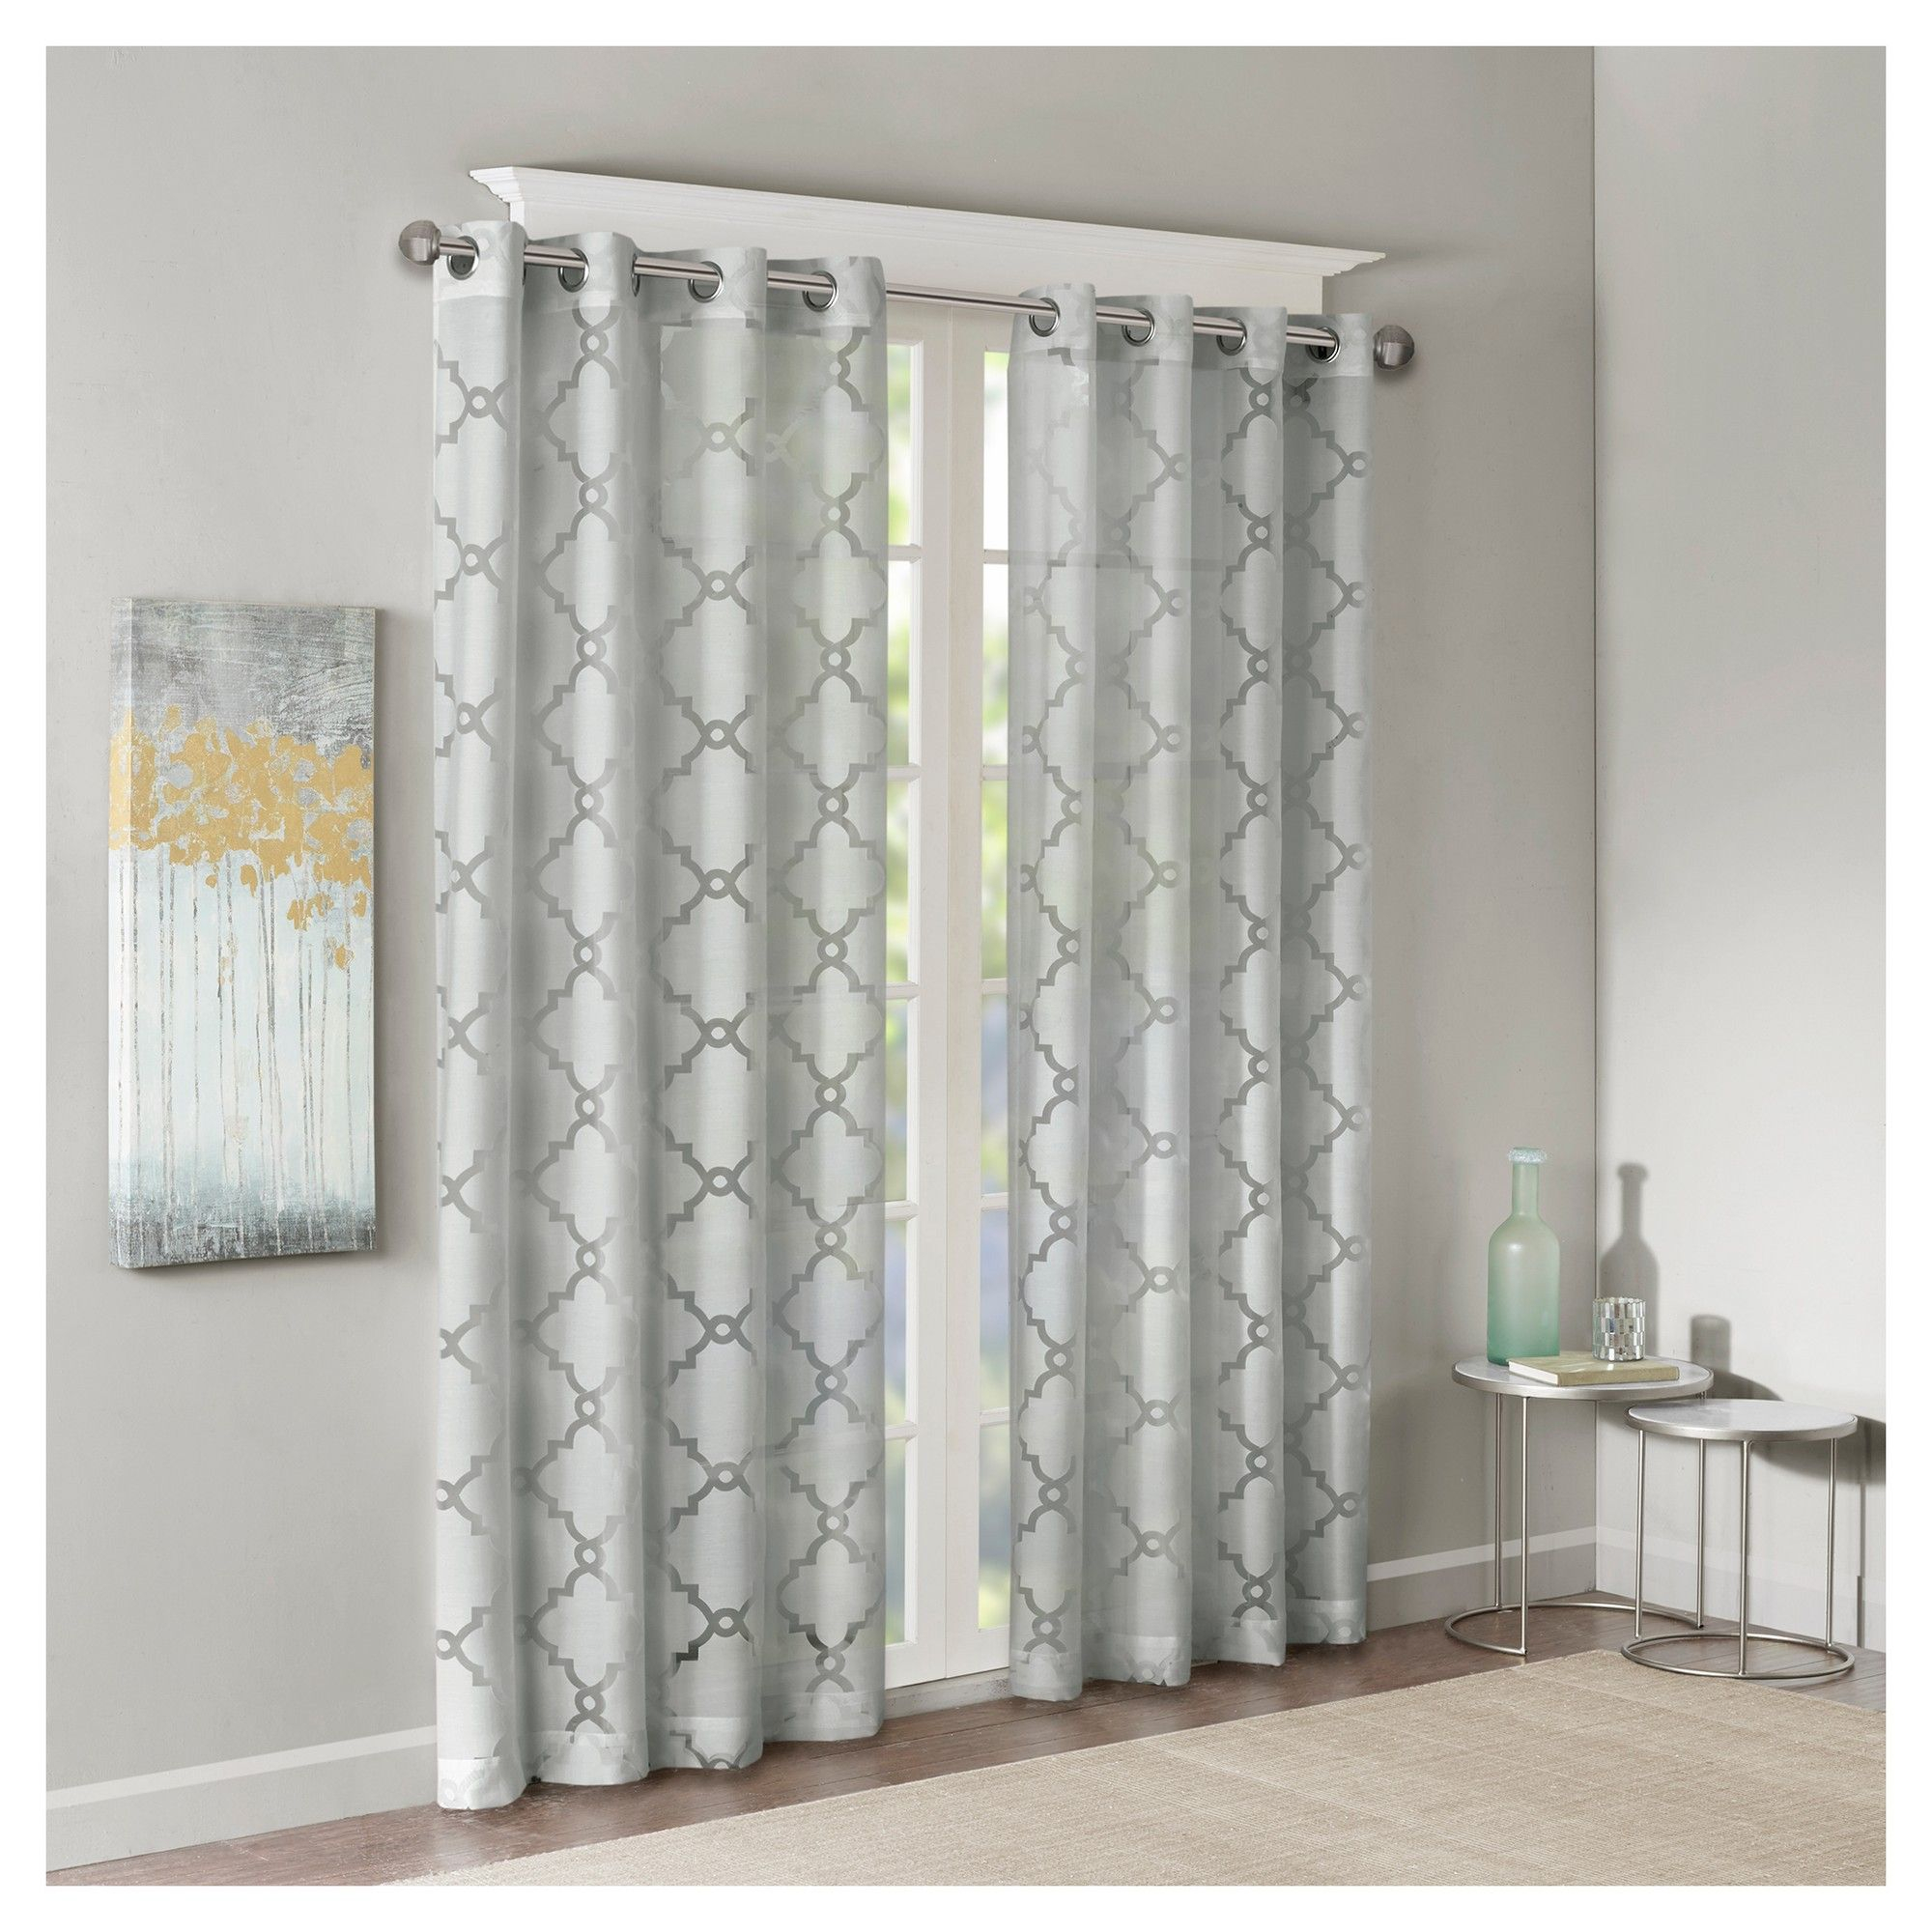 "Zoe Fretwork Burnout Sheer Panel Gray (50""x84"") 